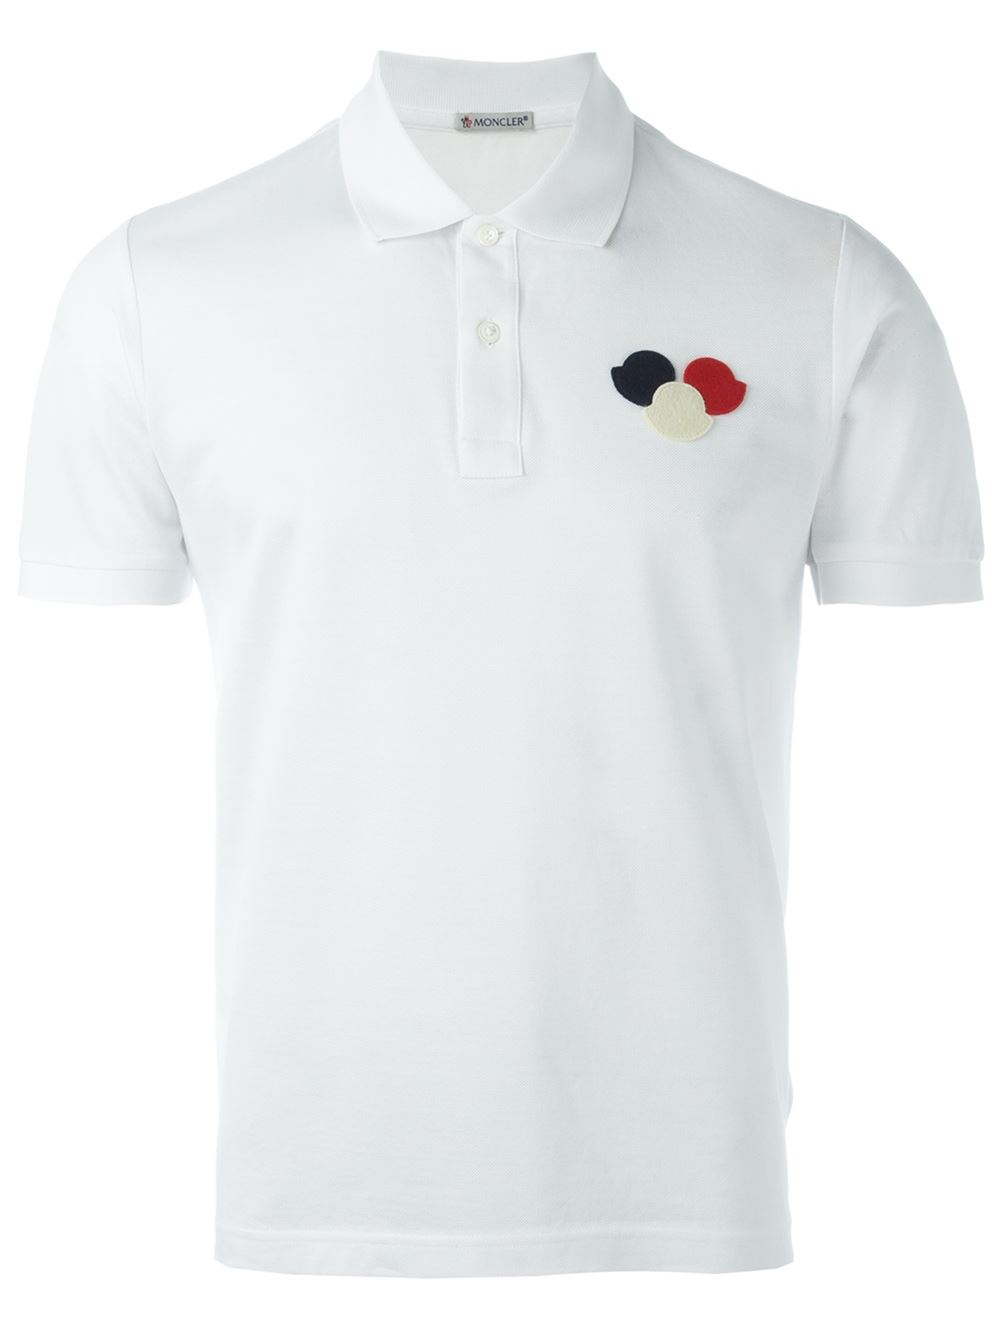 moncler logo polo shirt in white for men lyst. Black Bedroom Furniture Sets. Home Design Ideas